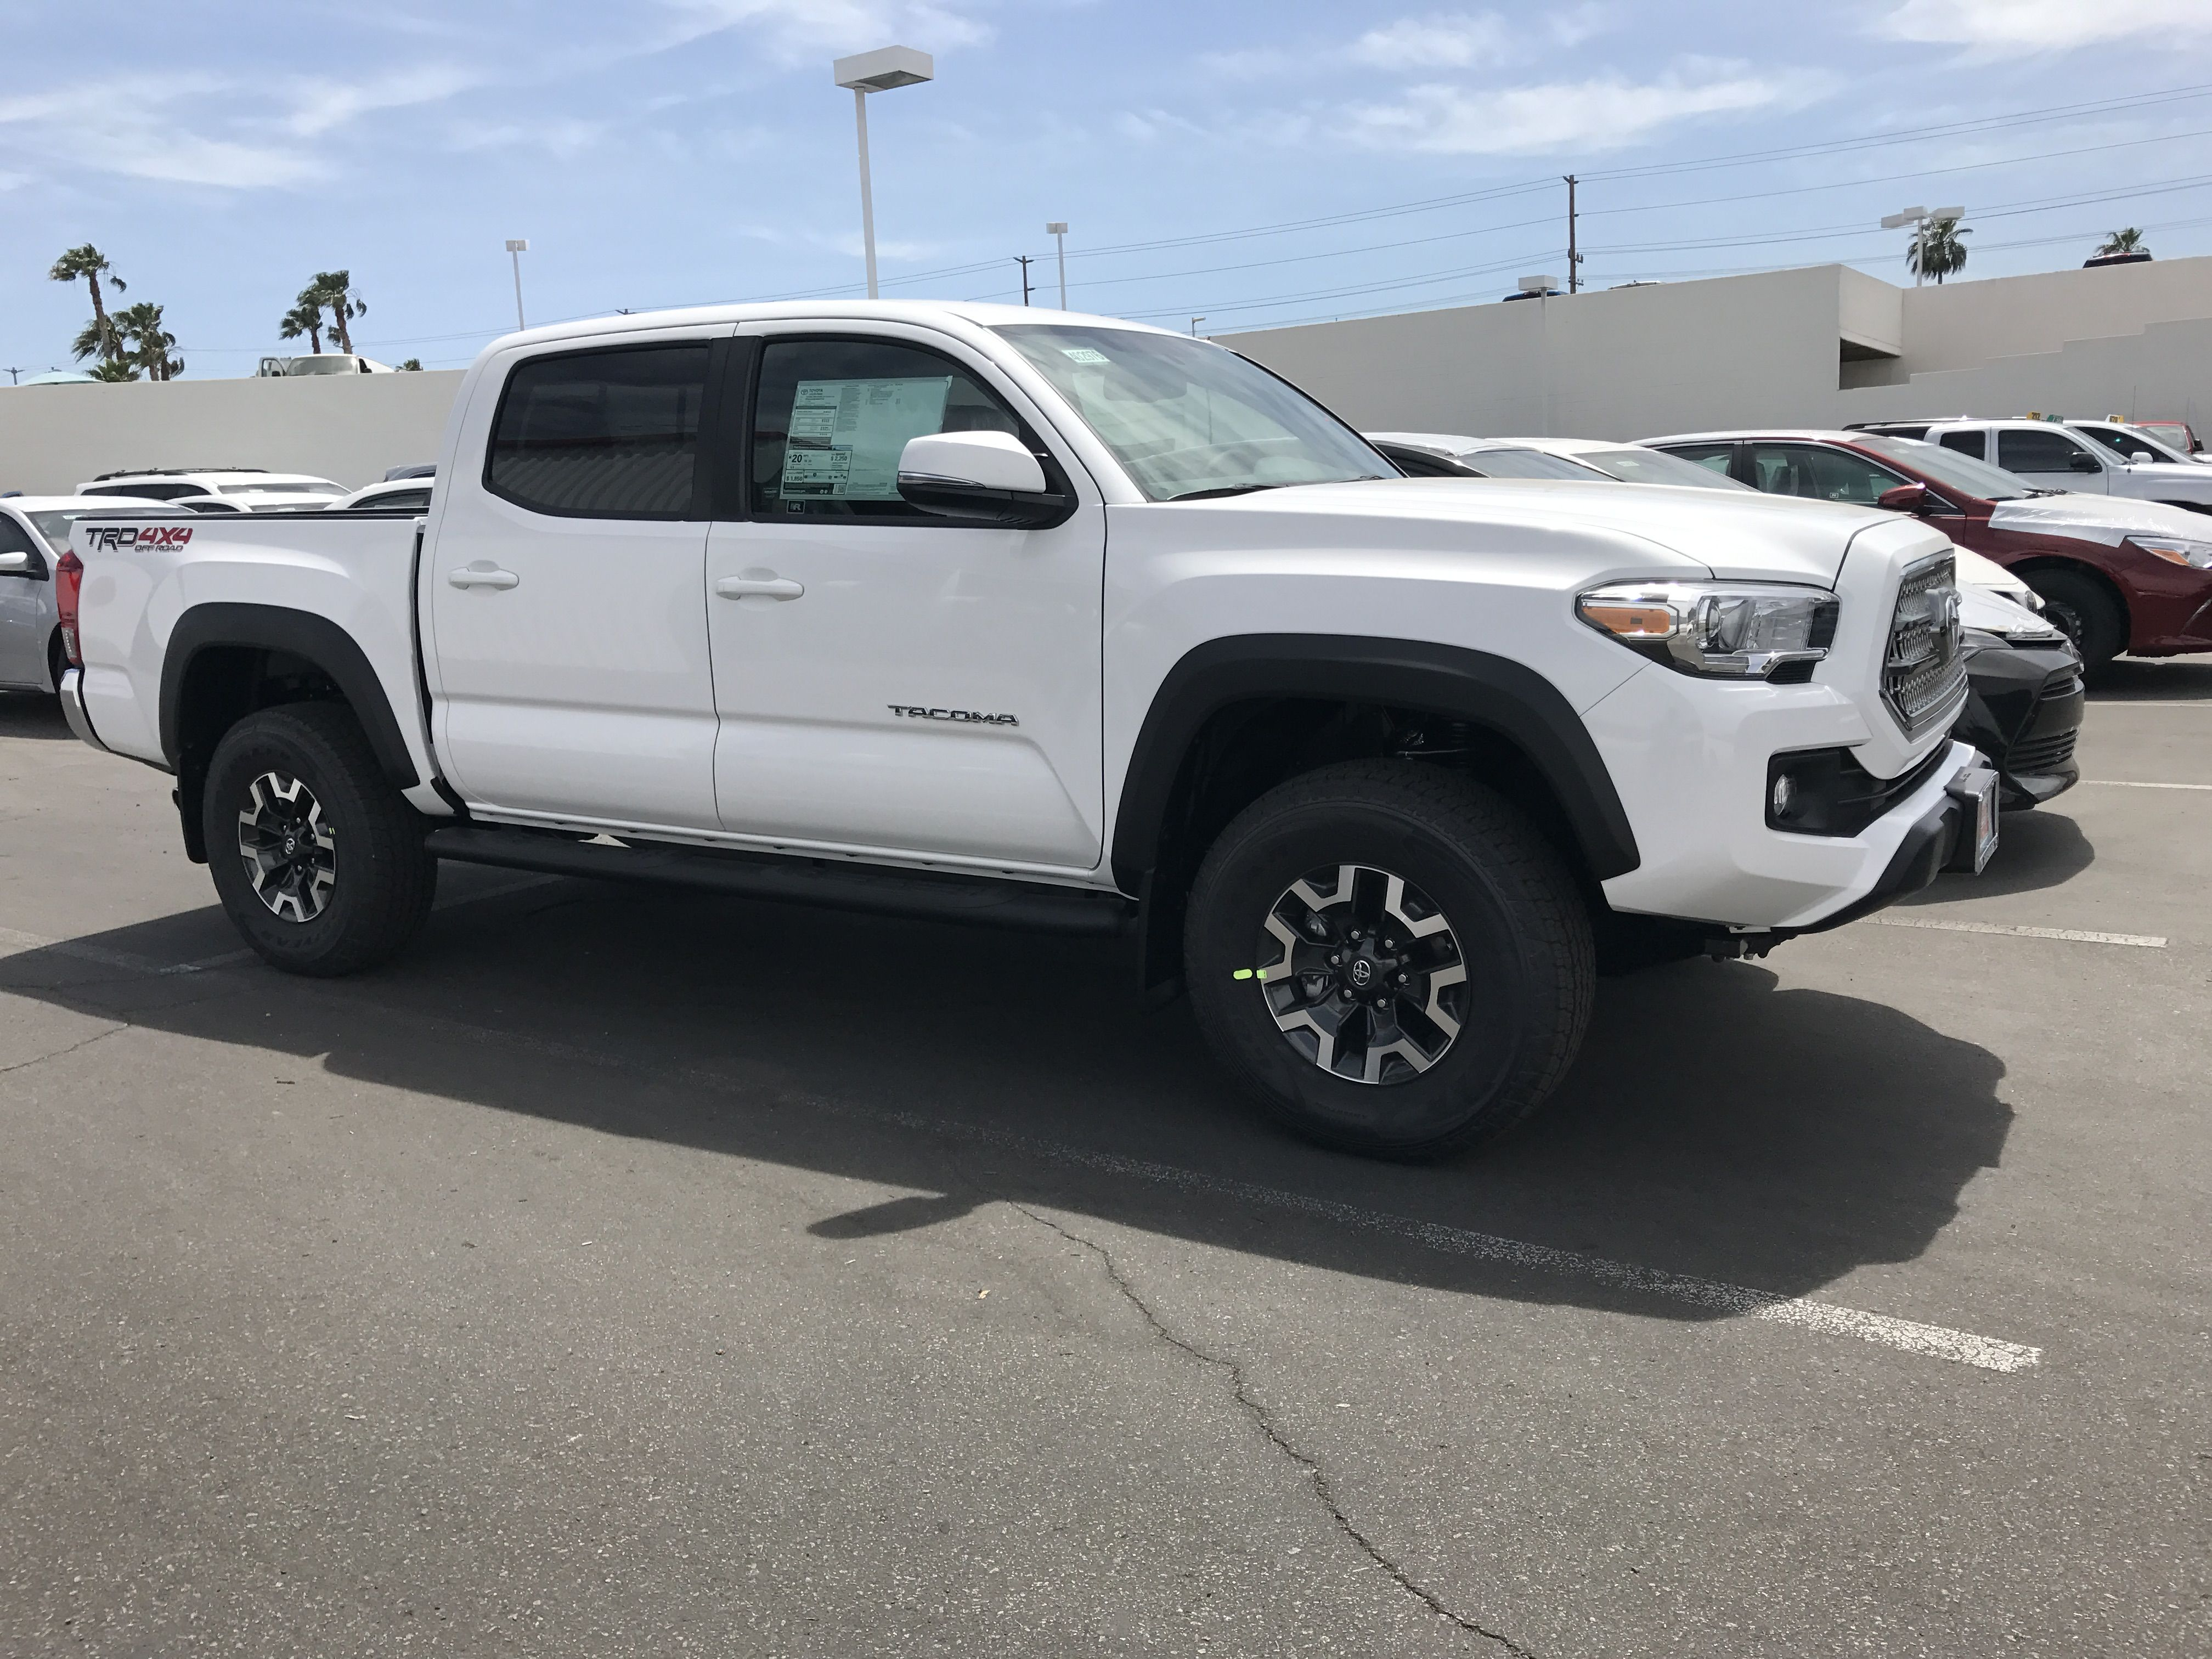 Double Cab 4x4 Trd Off Road Toyota Tacoma In Super White